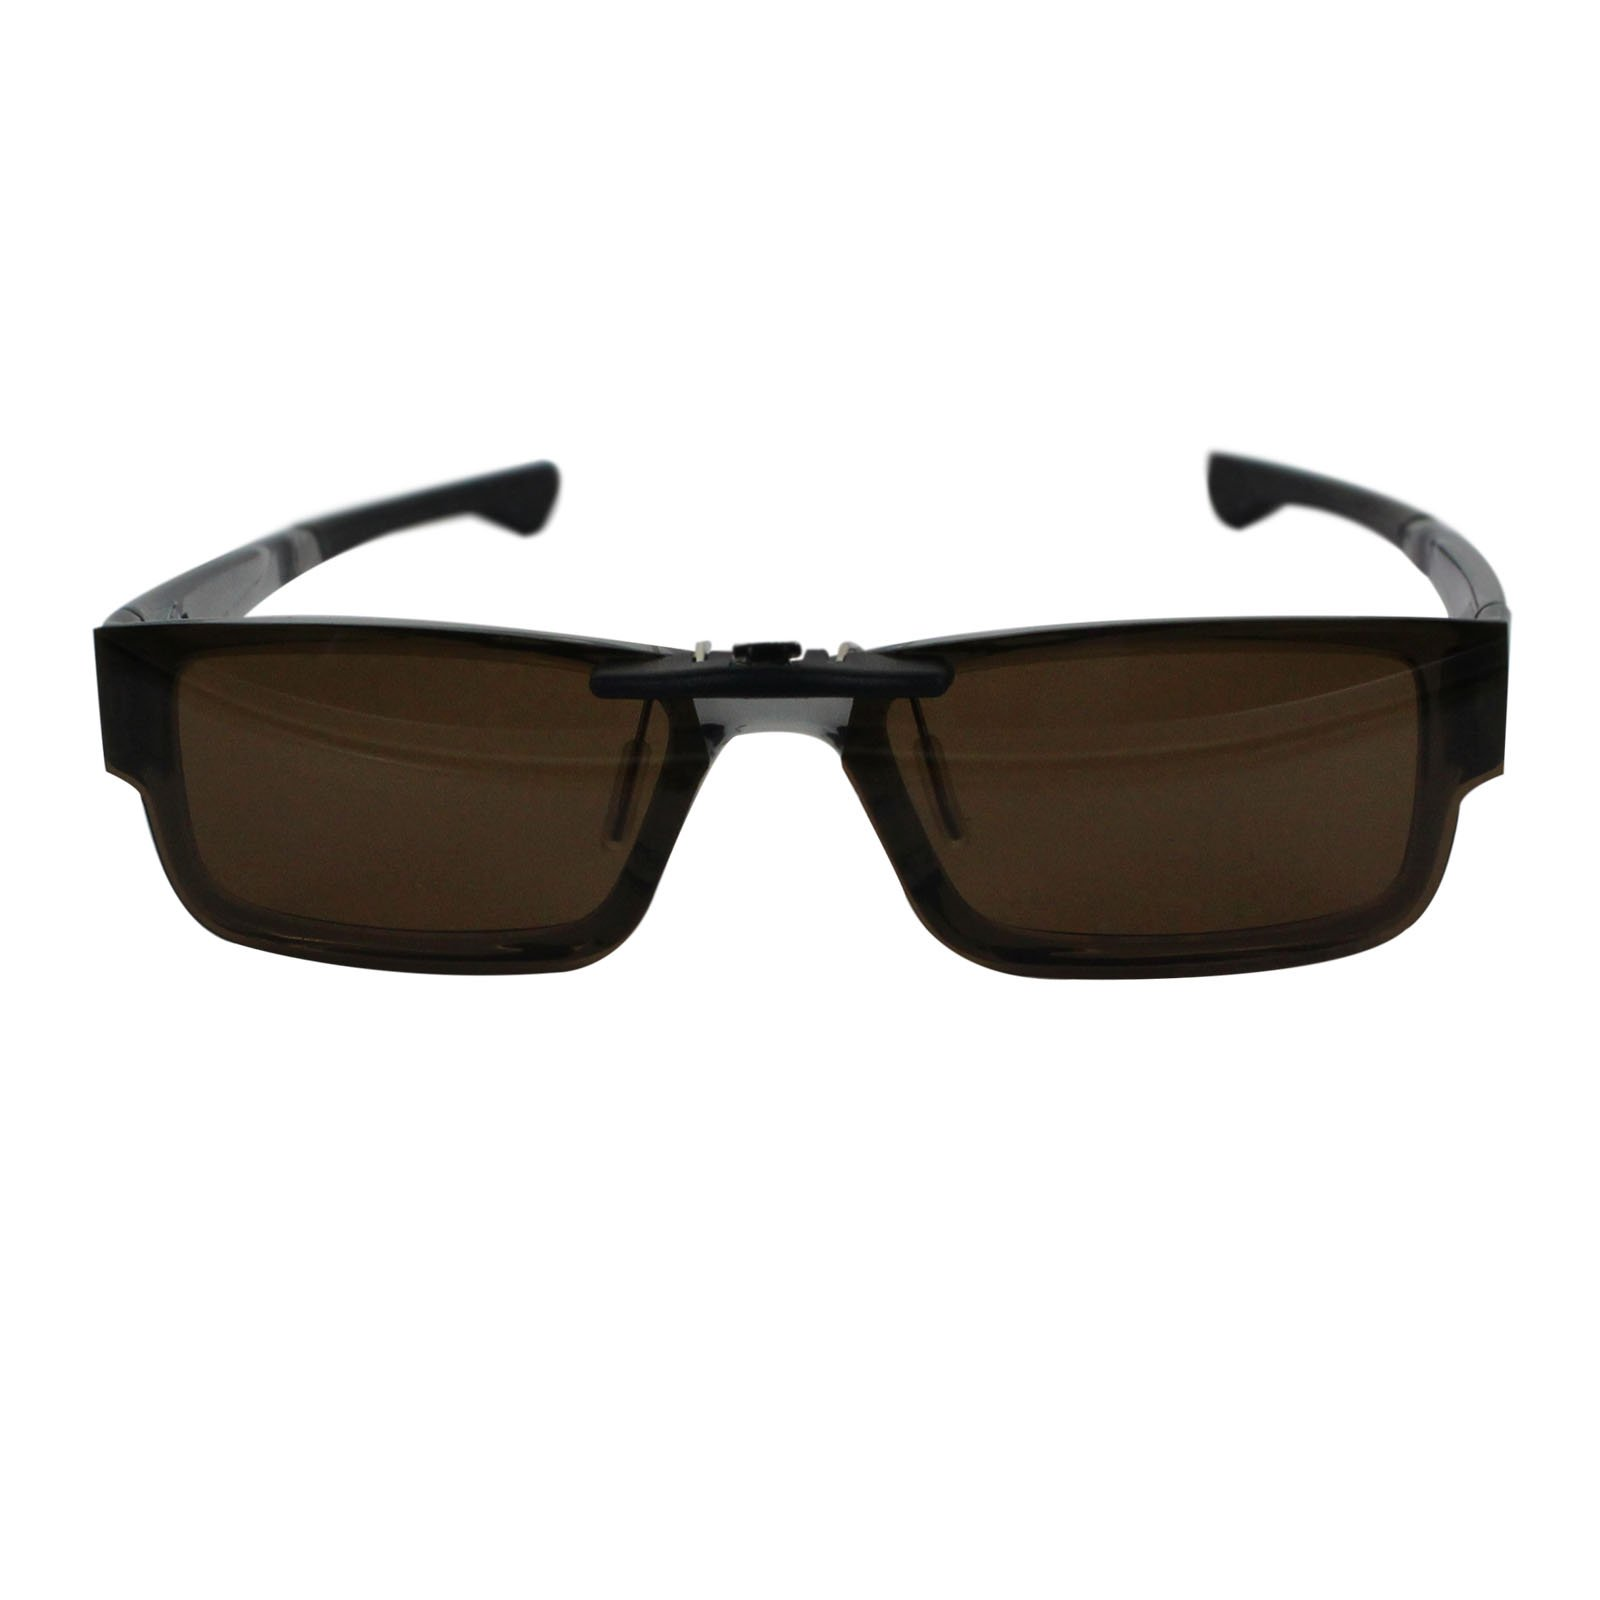 Custom Polarized Clip on Sunglasses For Oakley Airdrop 51 OX8046 51-18-143 (Brown) by oGeee (Image #4)